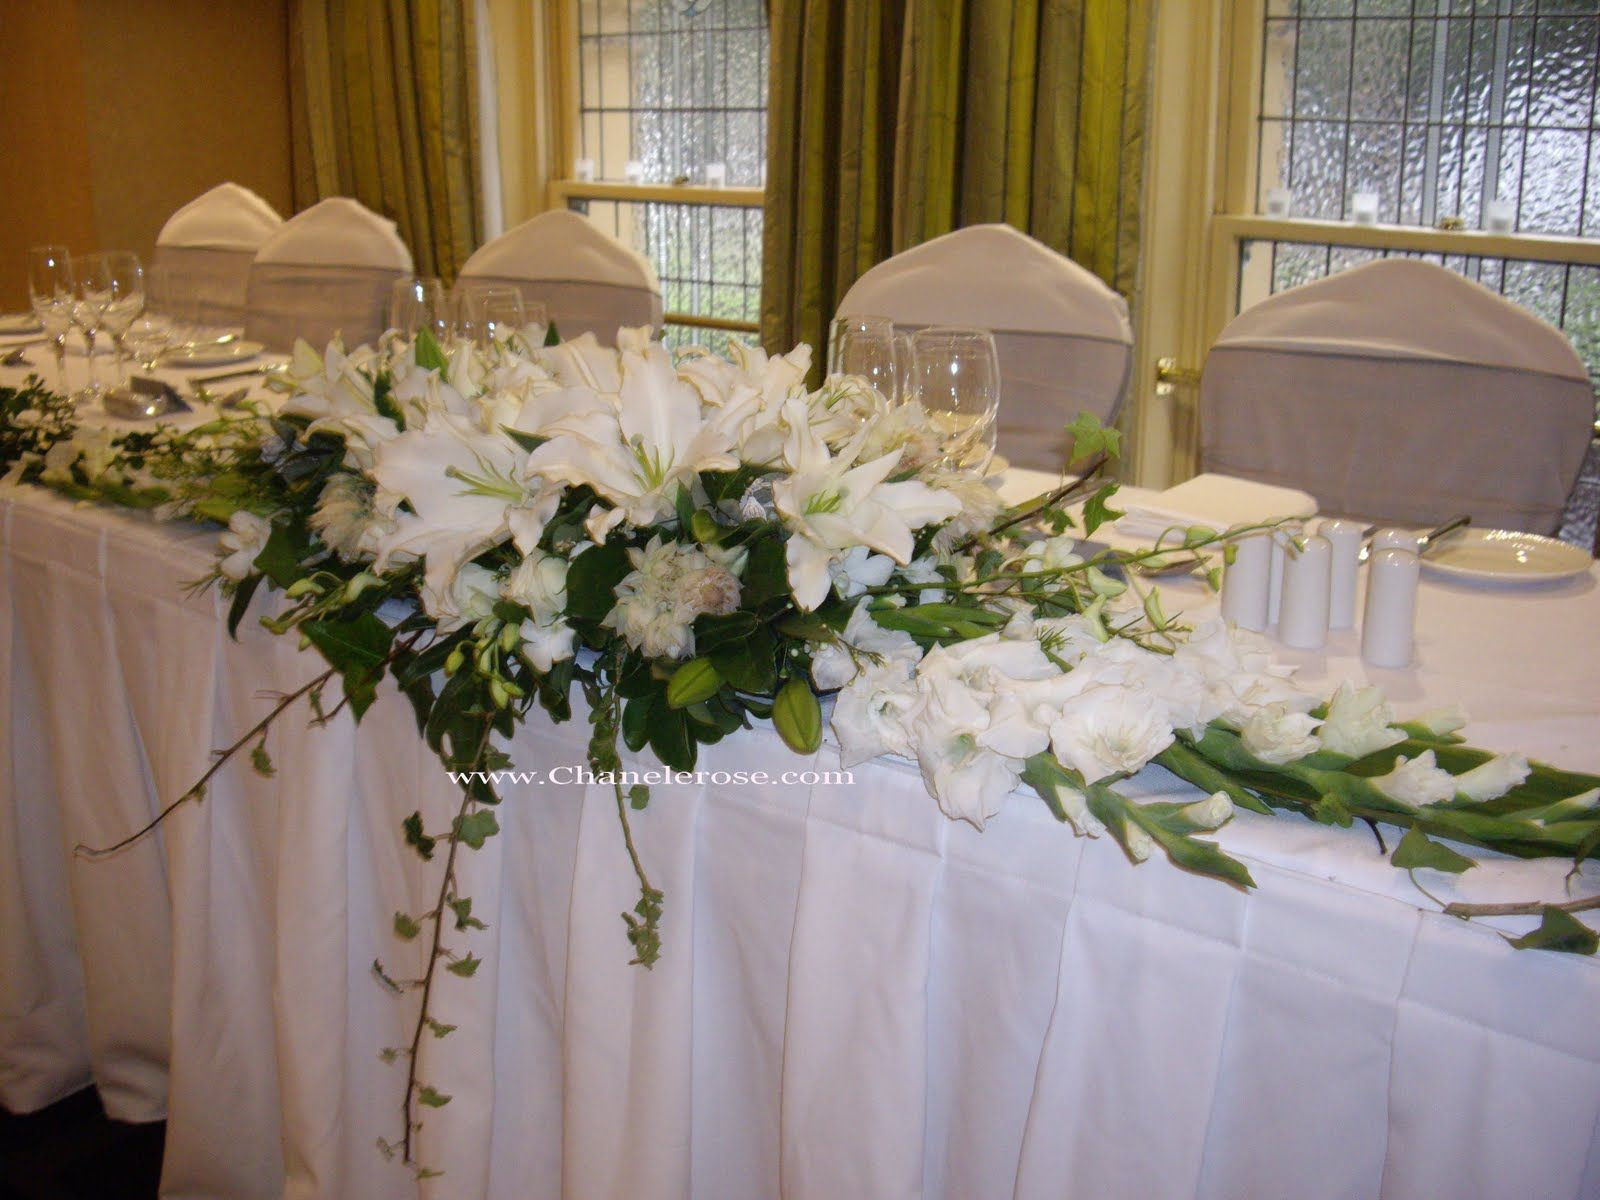 Bride And Groom Table Ideas Beneath The Of White Oriental Lilies Roses